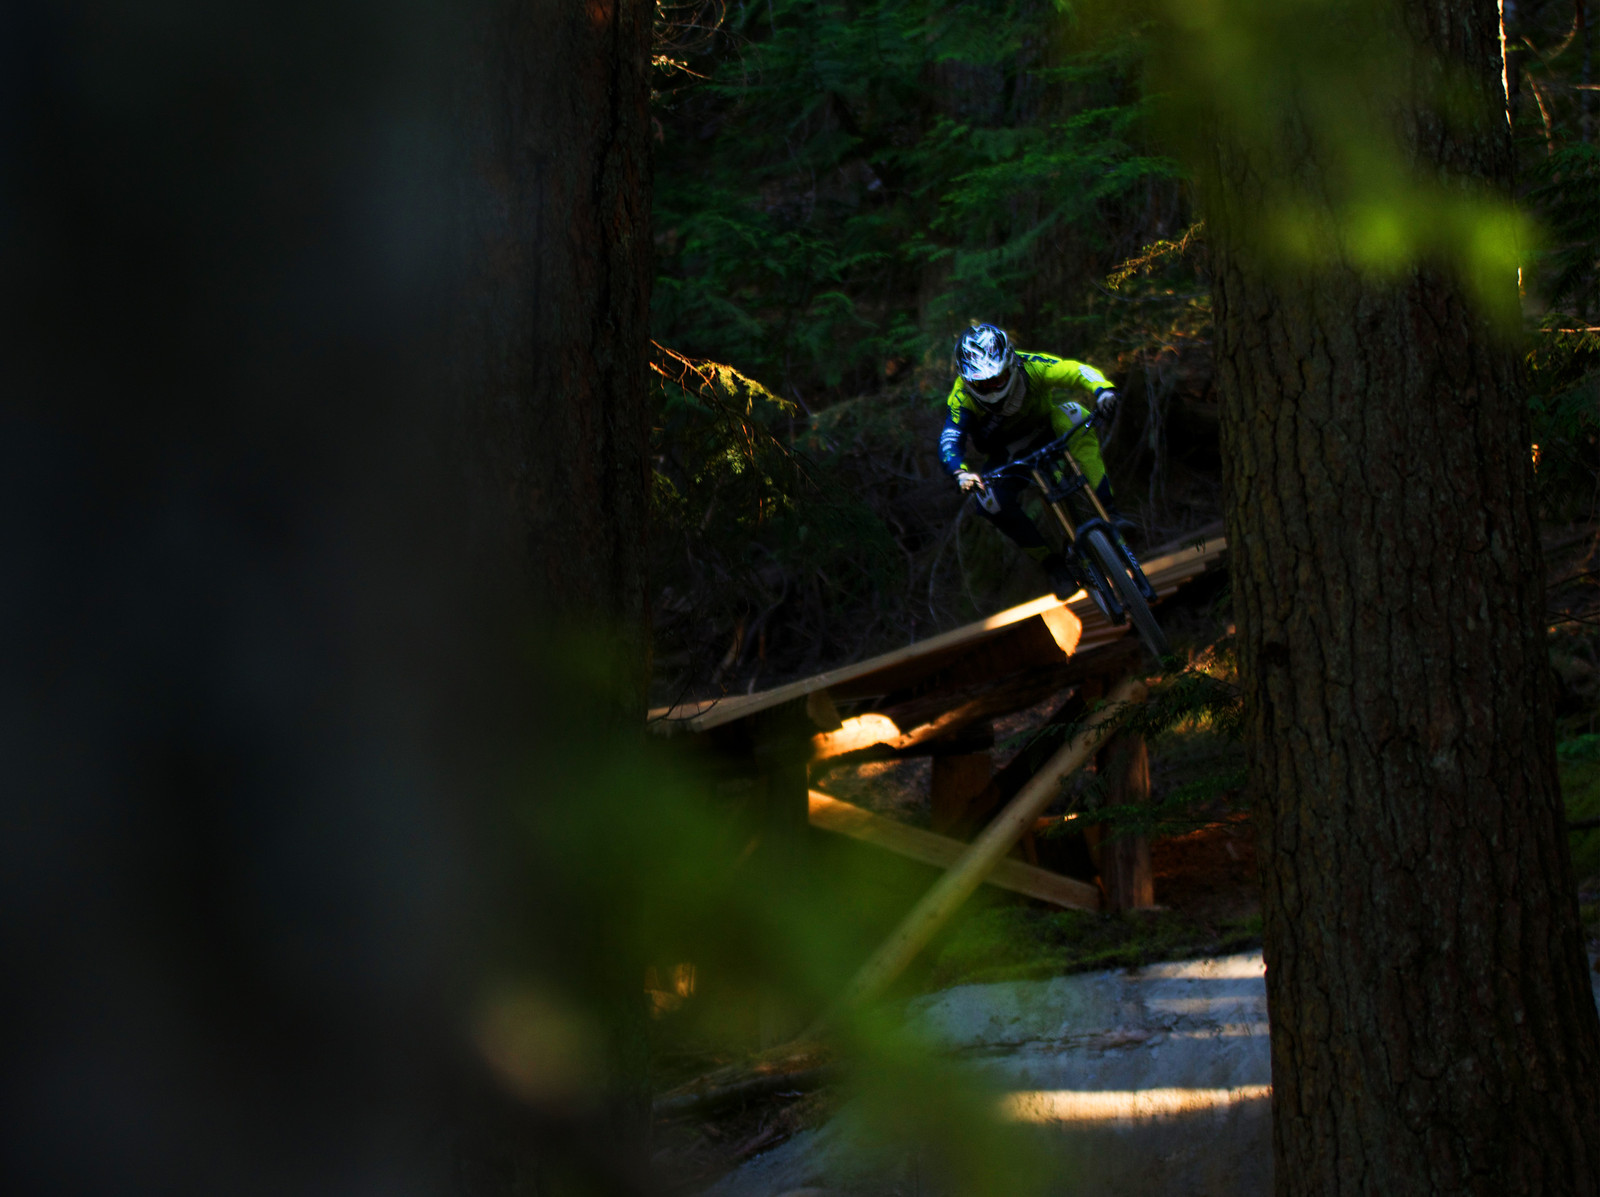 A Classic Gets an Upgrade - Dylan Kish - Mountain Biking Pictures - Vital MTB